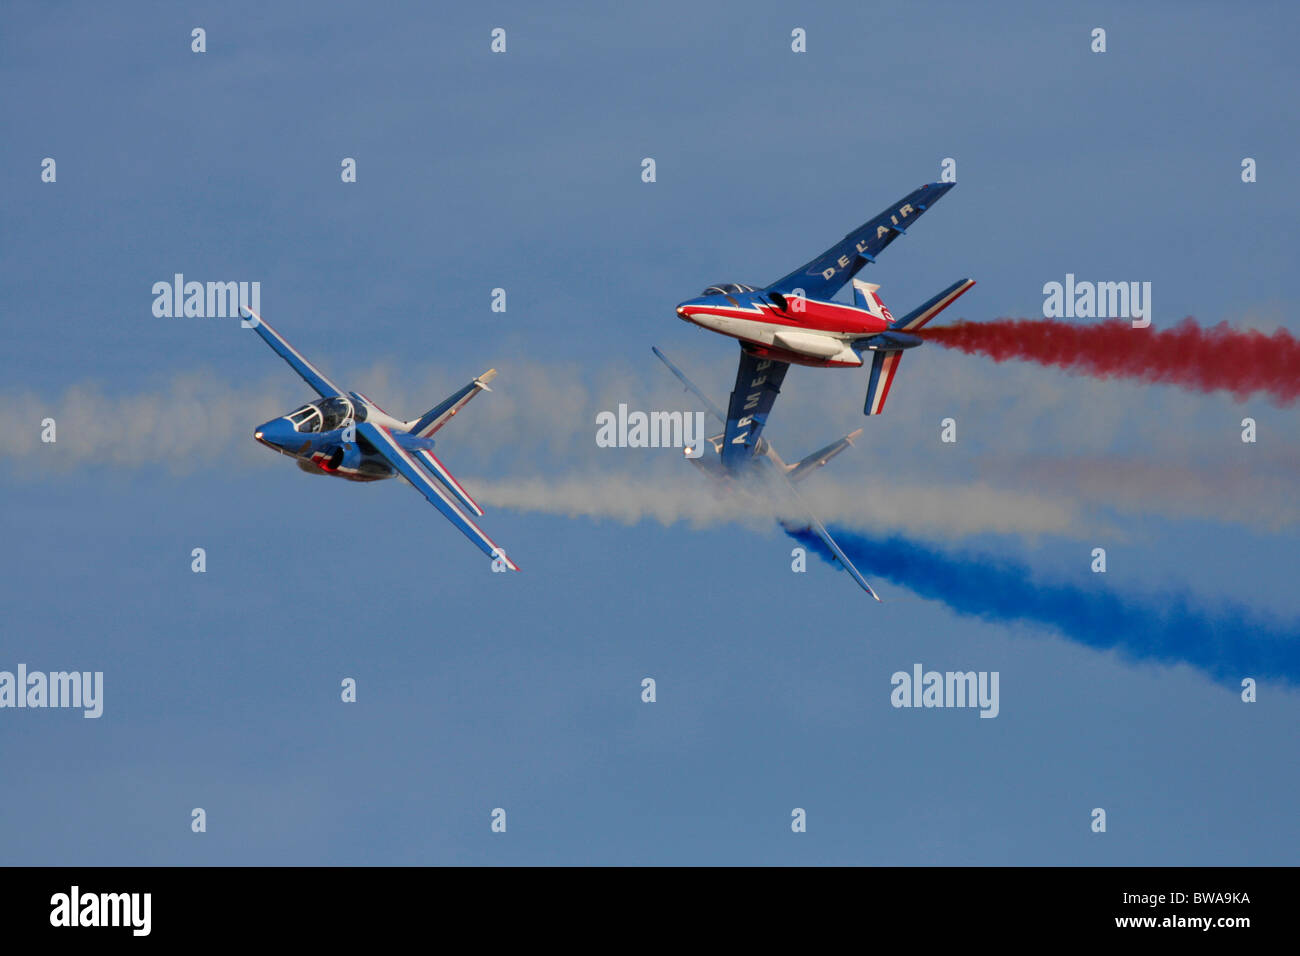 Patrouille de France Alpha Jets flying in an air display - Stock Image